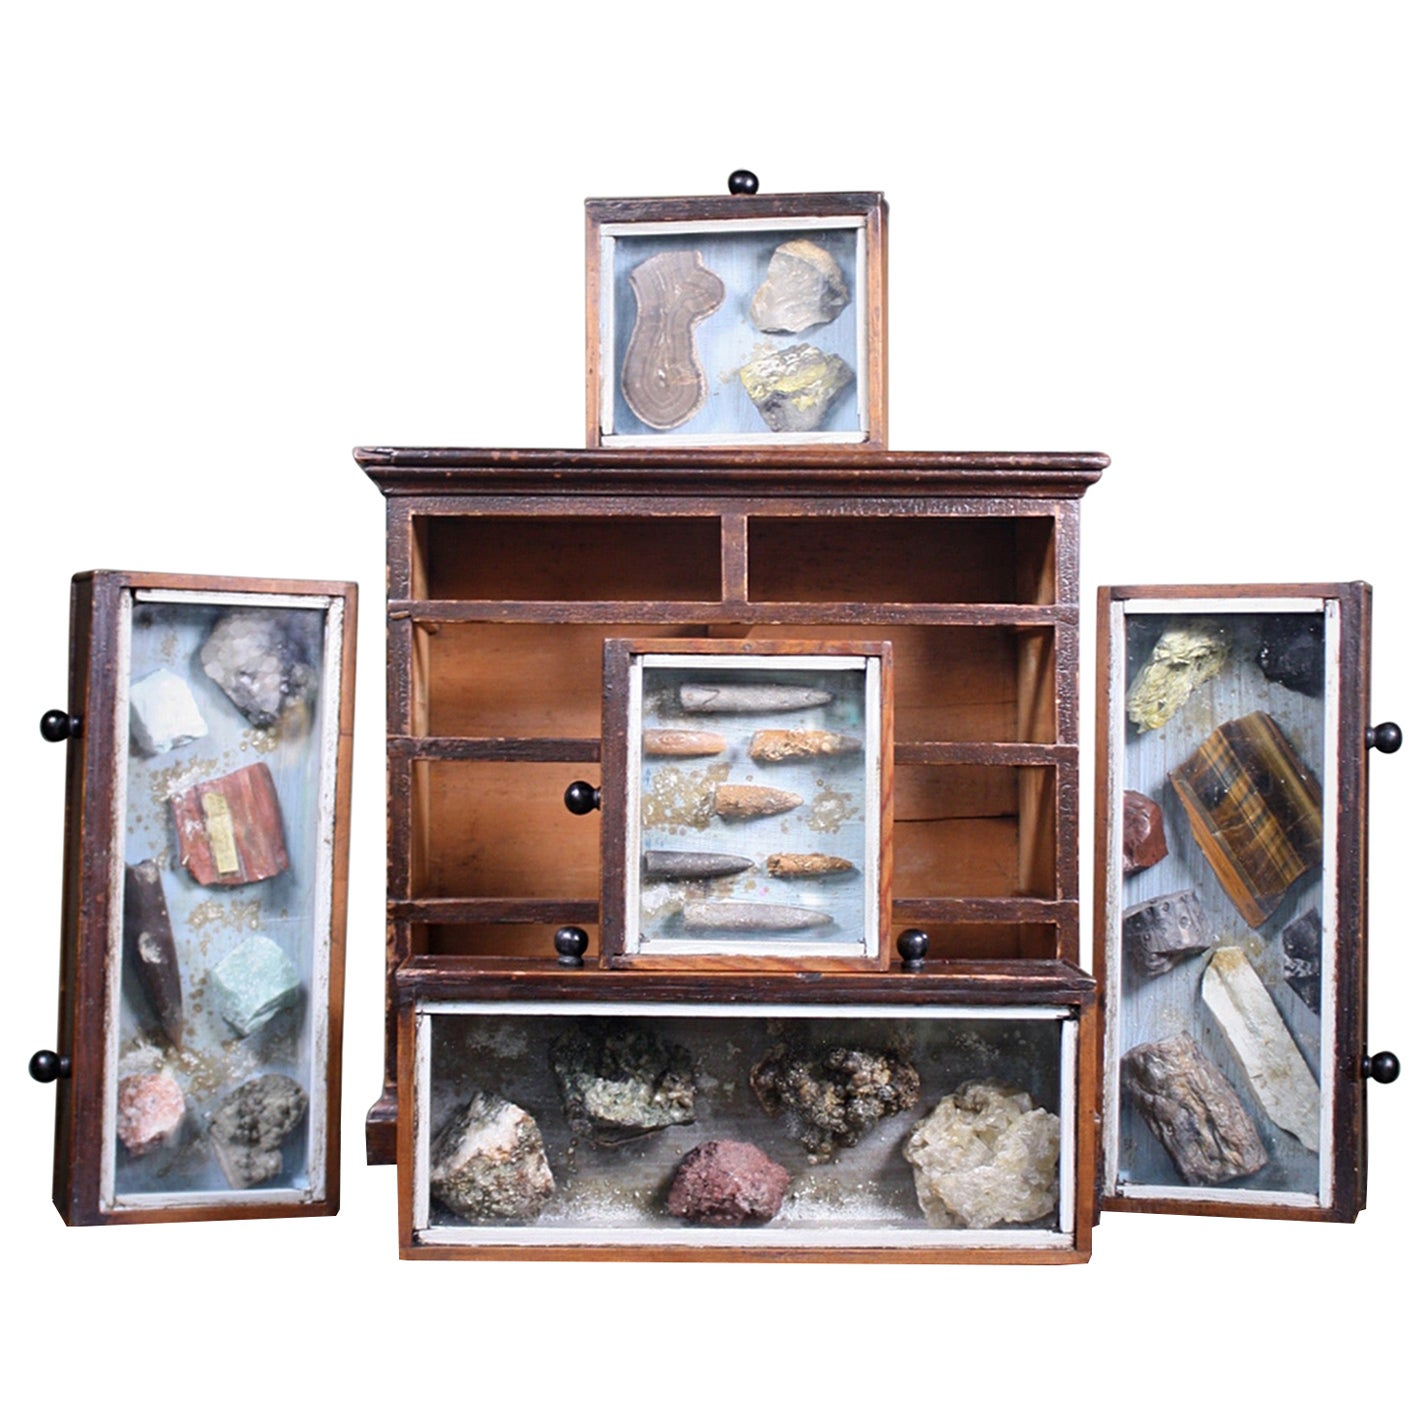 Denver Colorado D C Woodend, 1885 Table Top Geology Mineral Specimen Chest